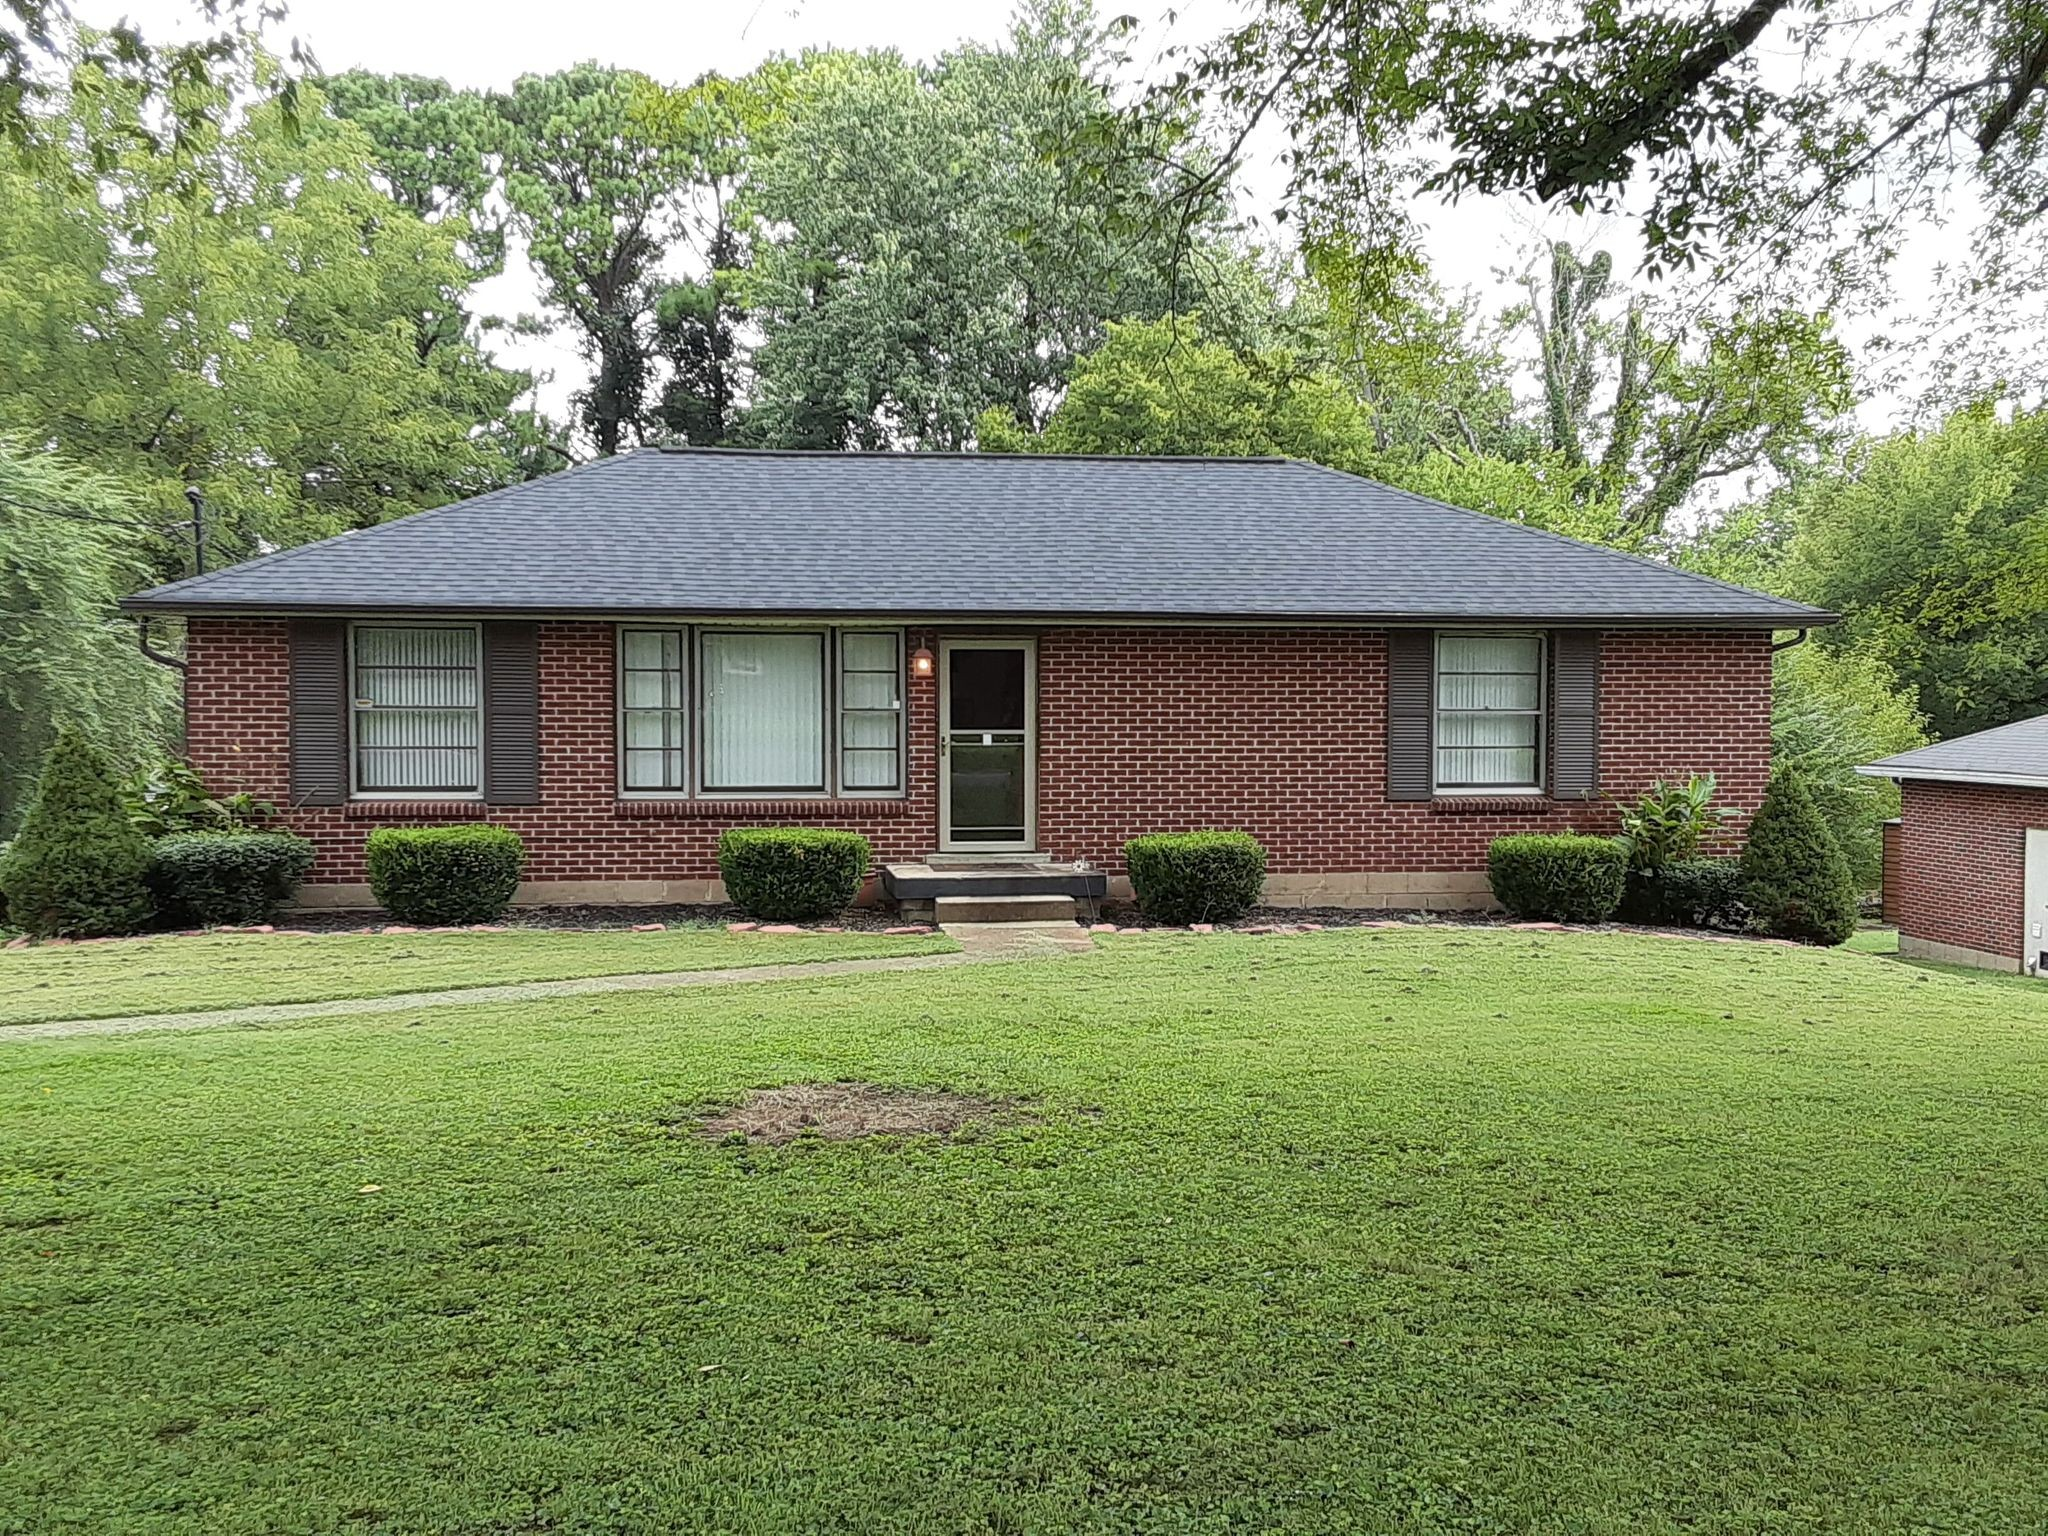 Well-maintained brick home in East Nashville. Gorgeous yard. Made for entertainment!! Walking distance to YMCA, South Inglewood Park, Babo's Korean Bar and minutes from downtown. The interior is waiting on your personal touch! Home is being sold AS IS!!! Inspections are welcome for buyer info only.